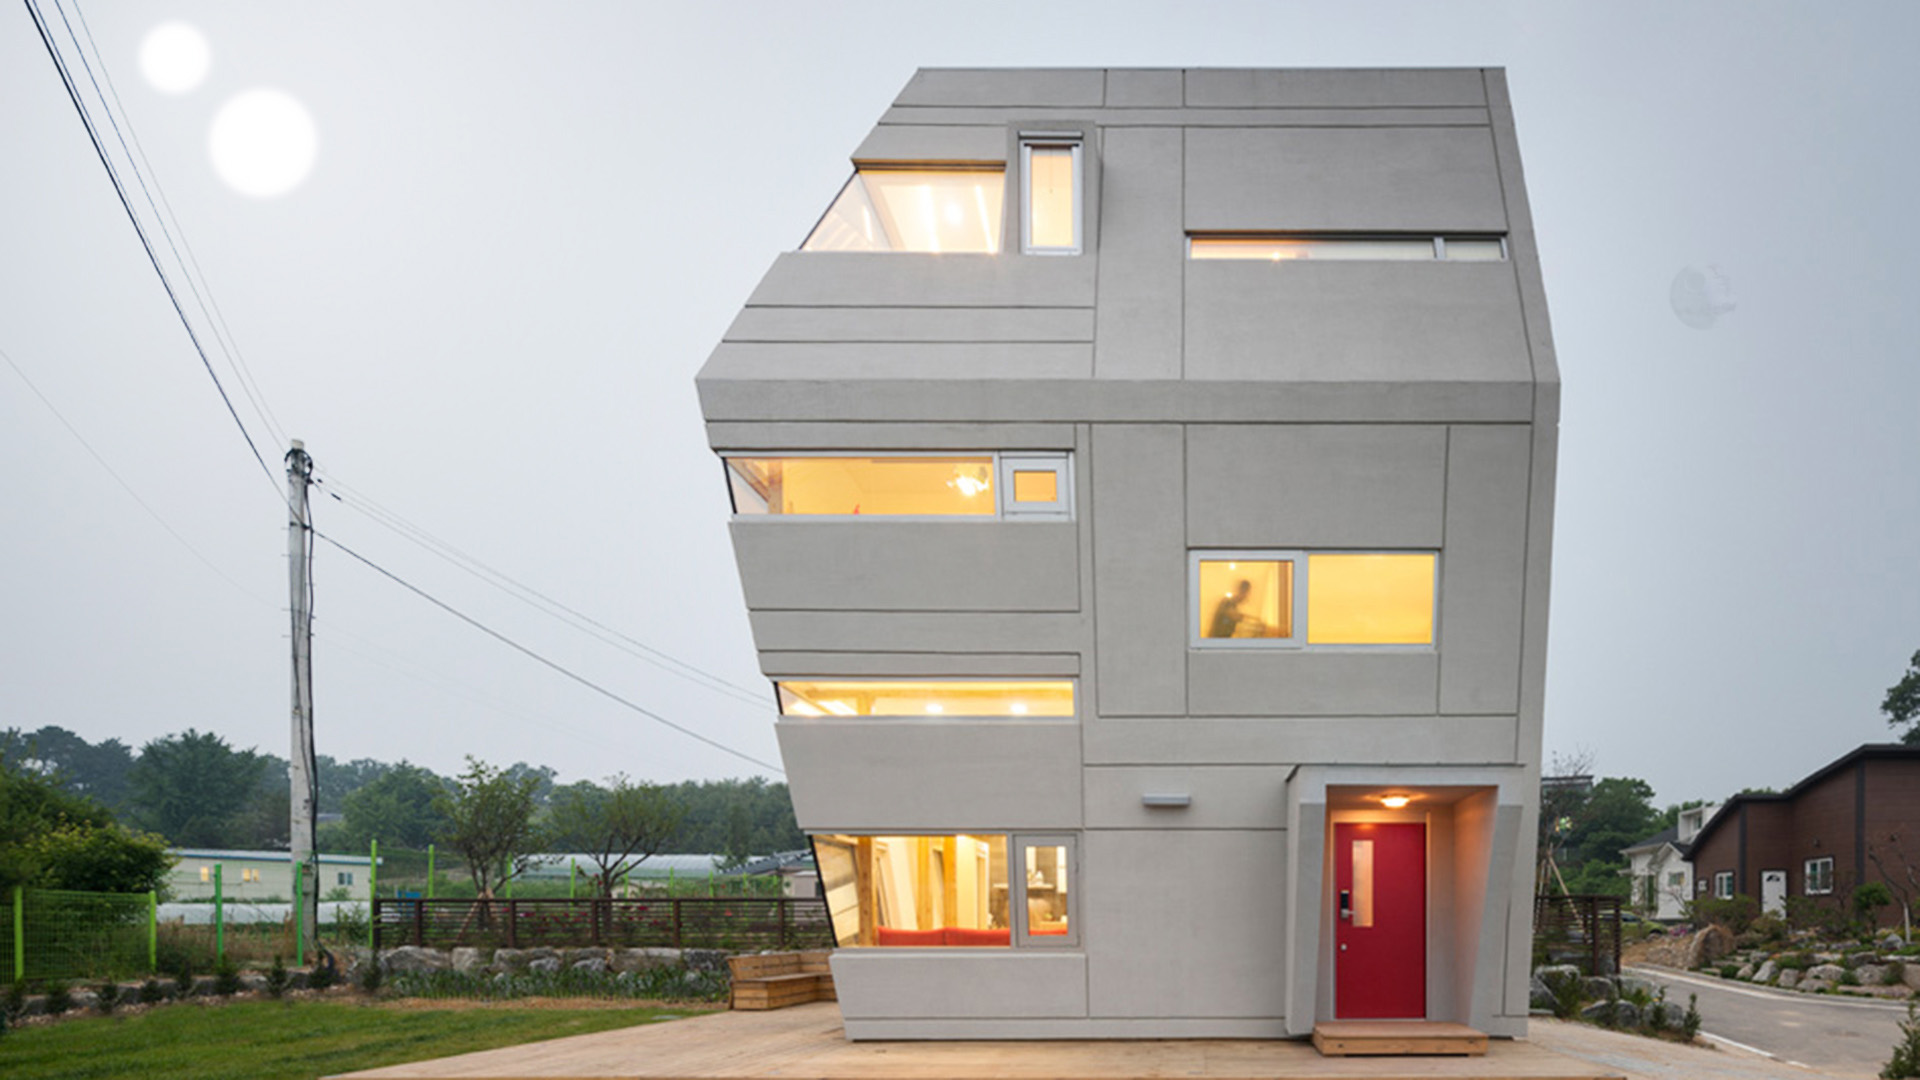 3035779-slide-s-1-this-house-was-inspired-by-star-wars